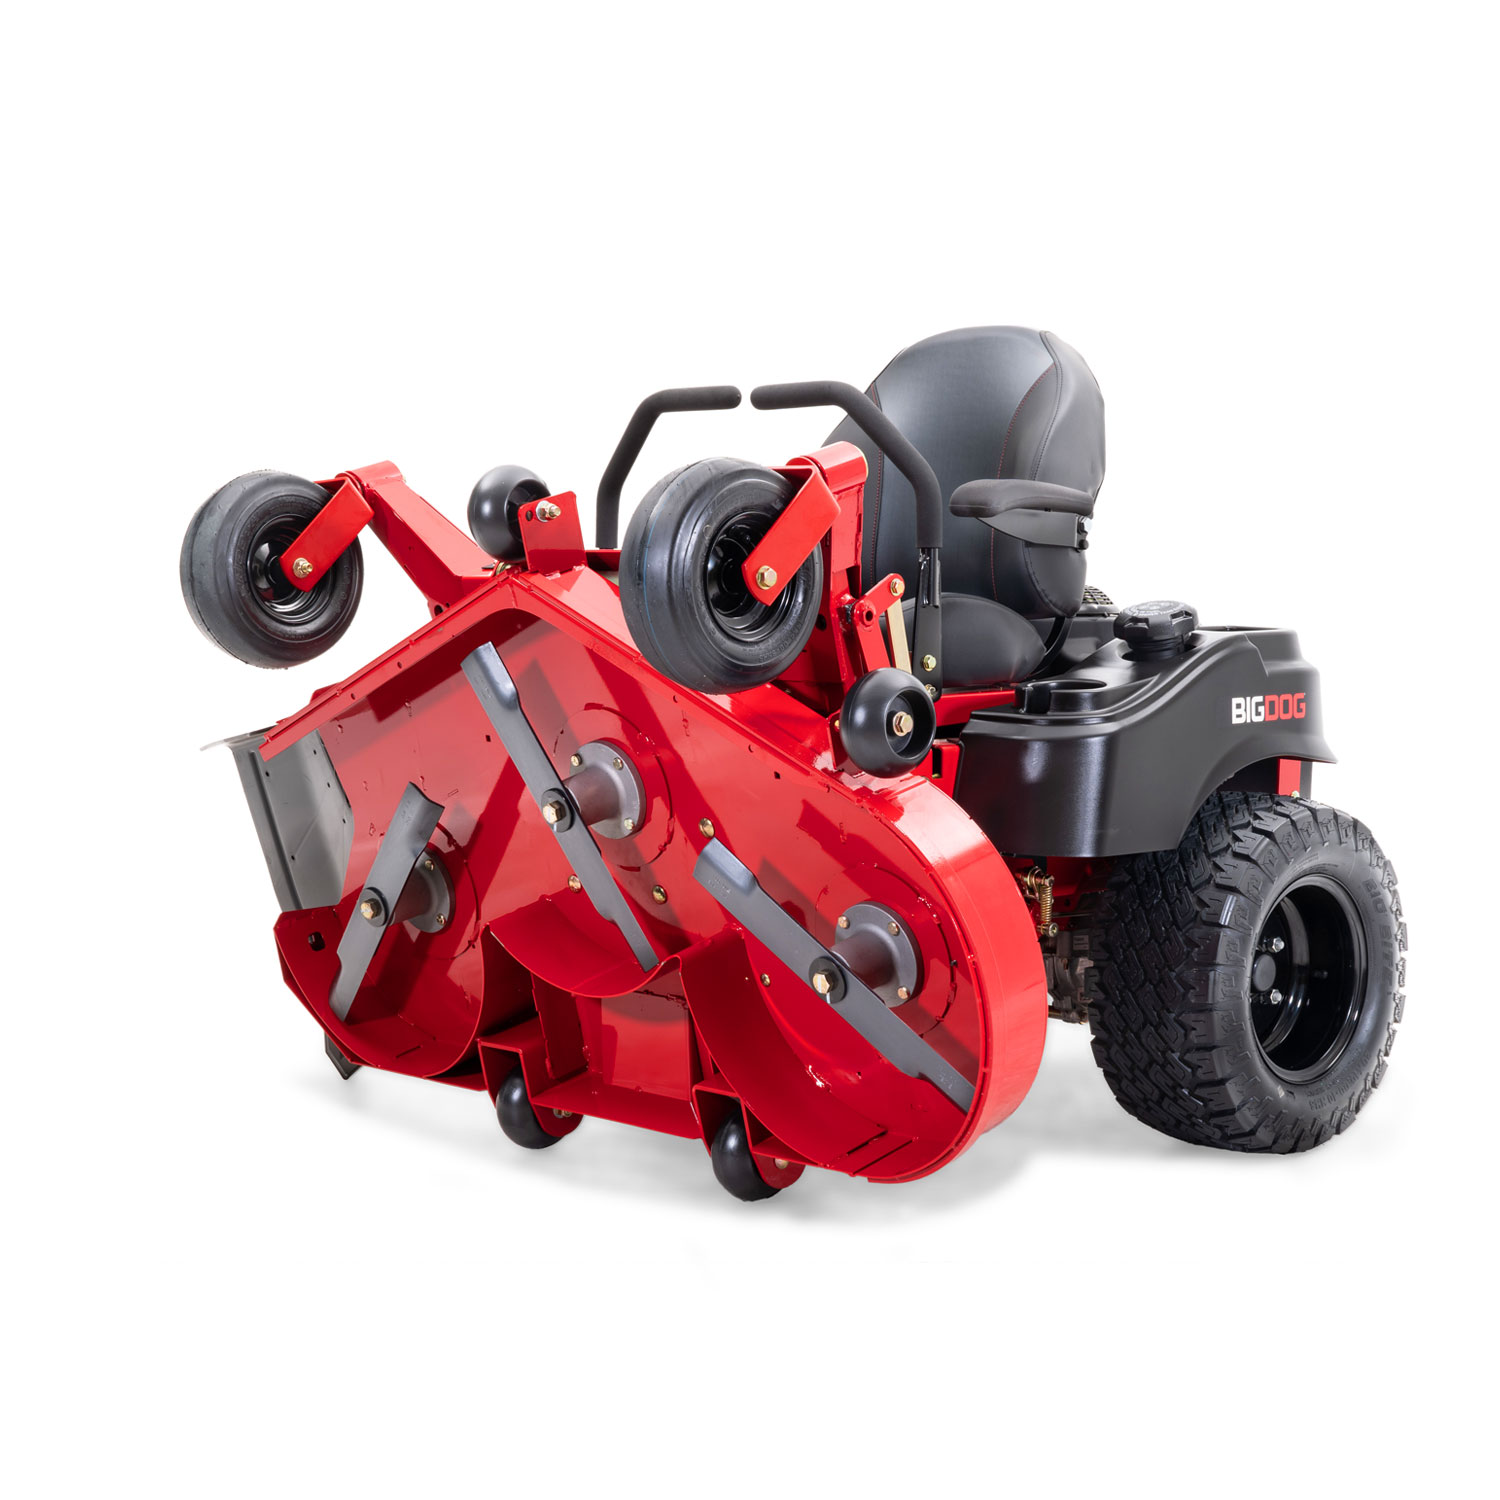 Image of the front three quarters of a red riding mower with the frame folded to see the underside of the mower deck